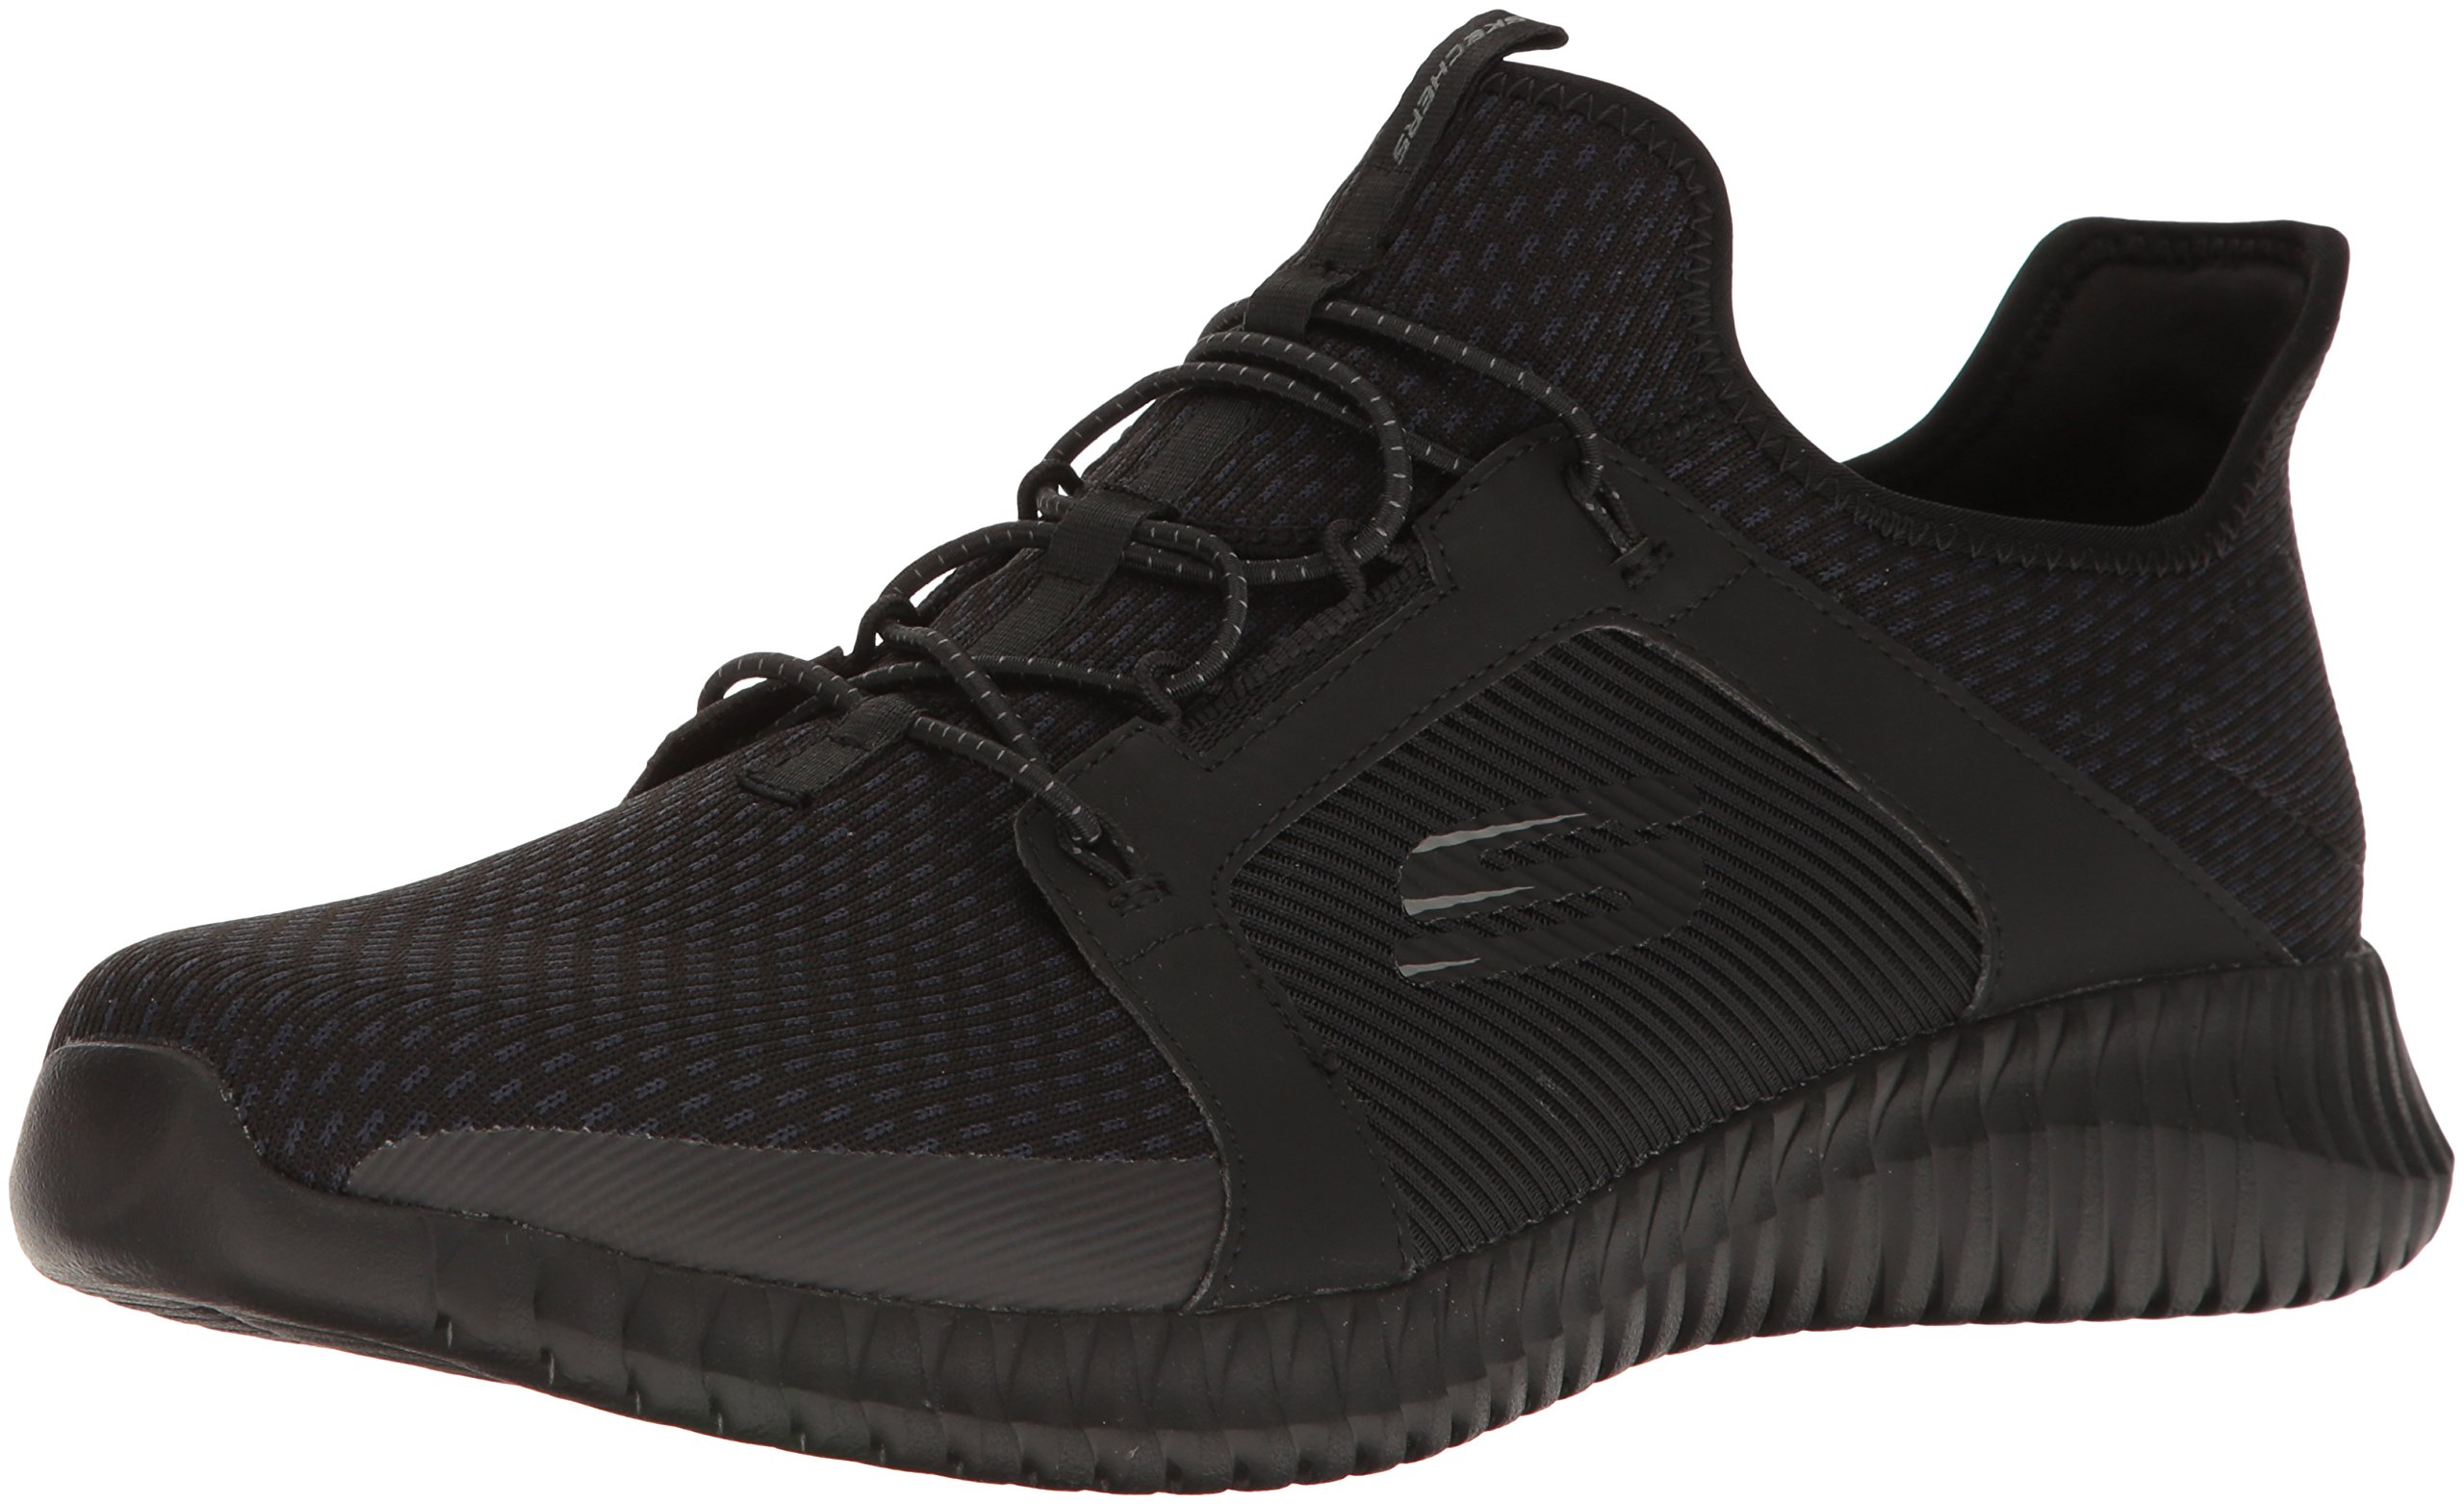 Details about Skechers 52640 BBK: Men's Elite Flex Black Sneaker